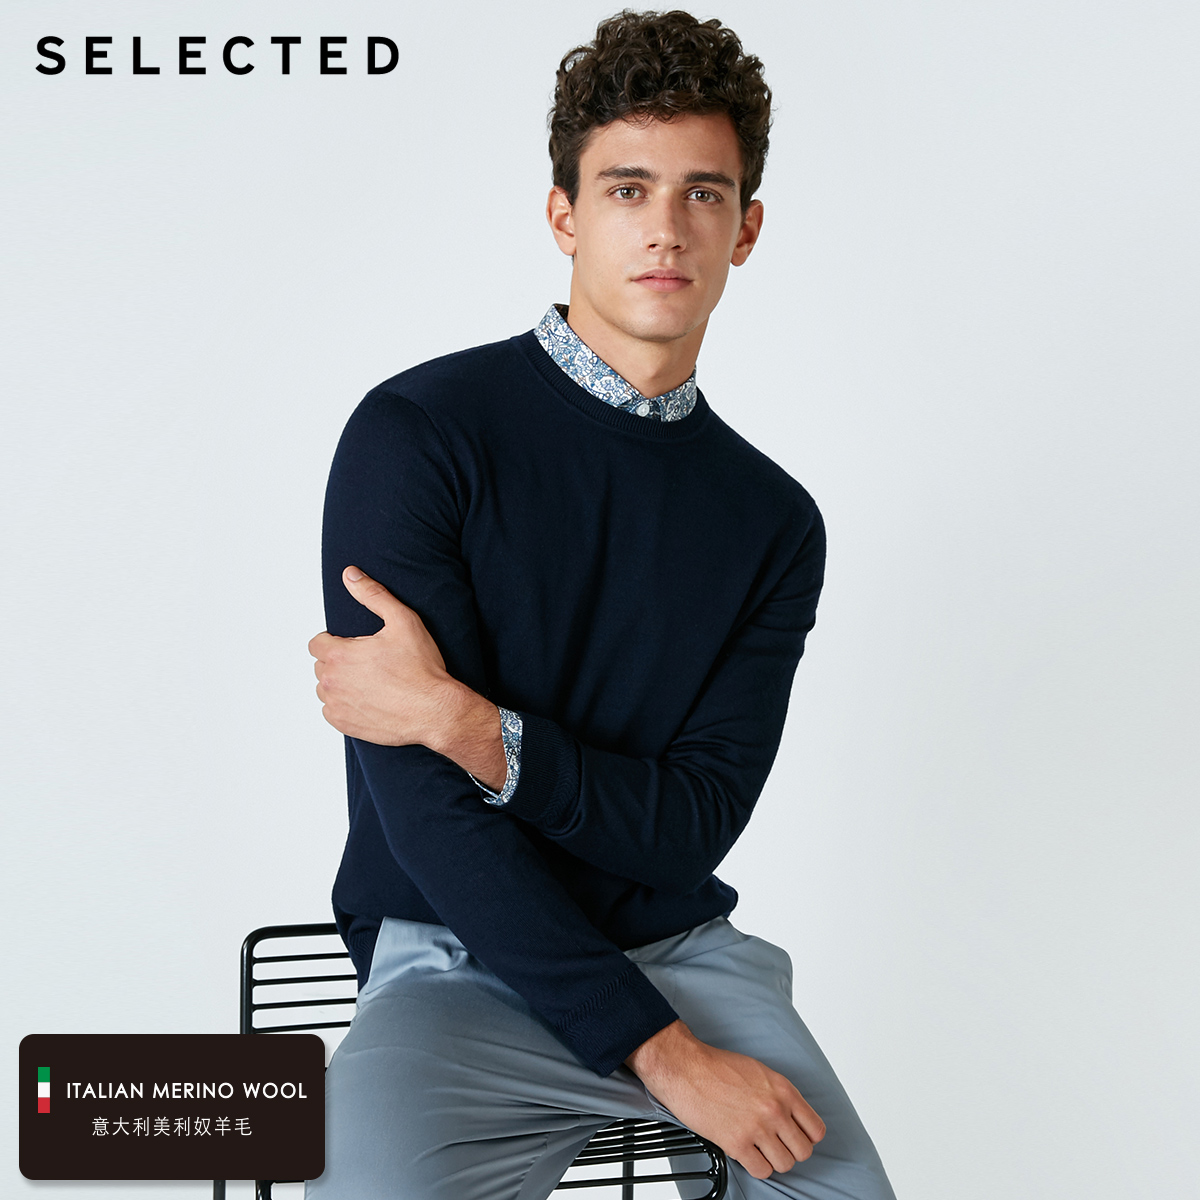 SELECTED  new male pure color Italy wool knitwear sweater S|418424503